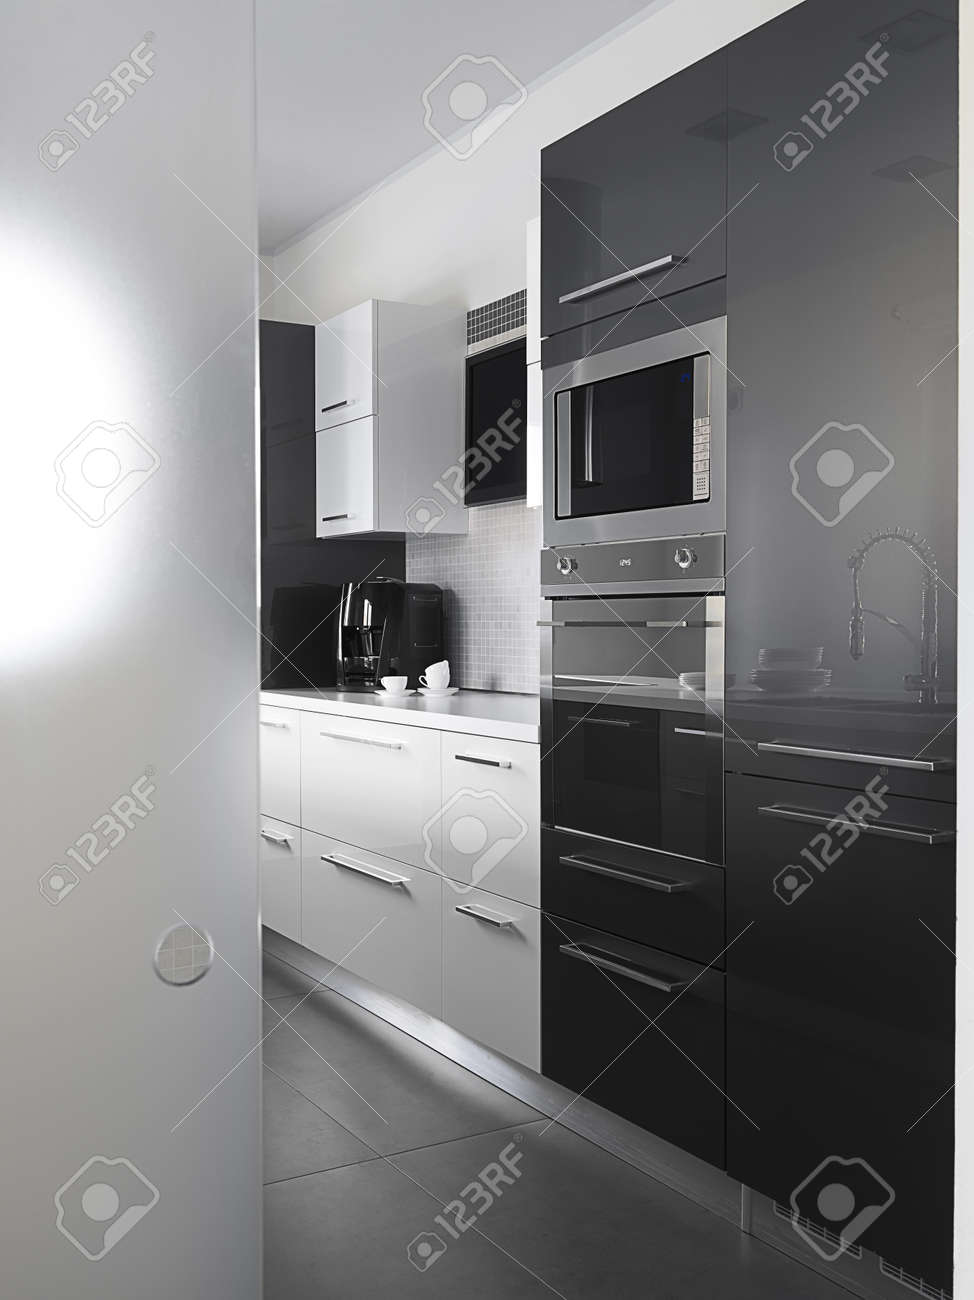 Gray Tile Floor Kitchen Modern Kitchen With Gray Tile Floor And White Wall Stock Photo